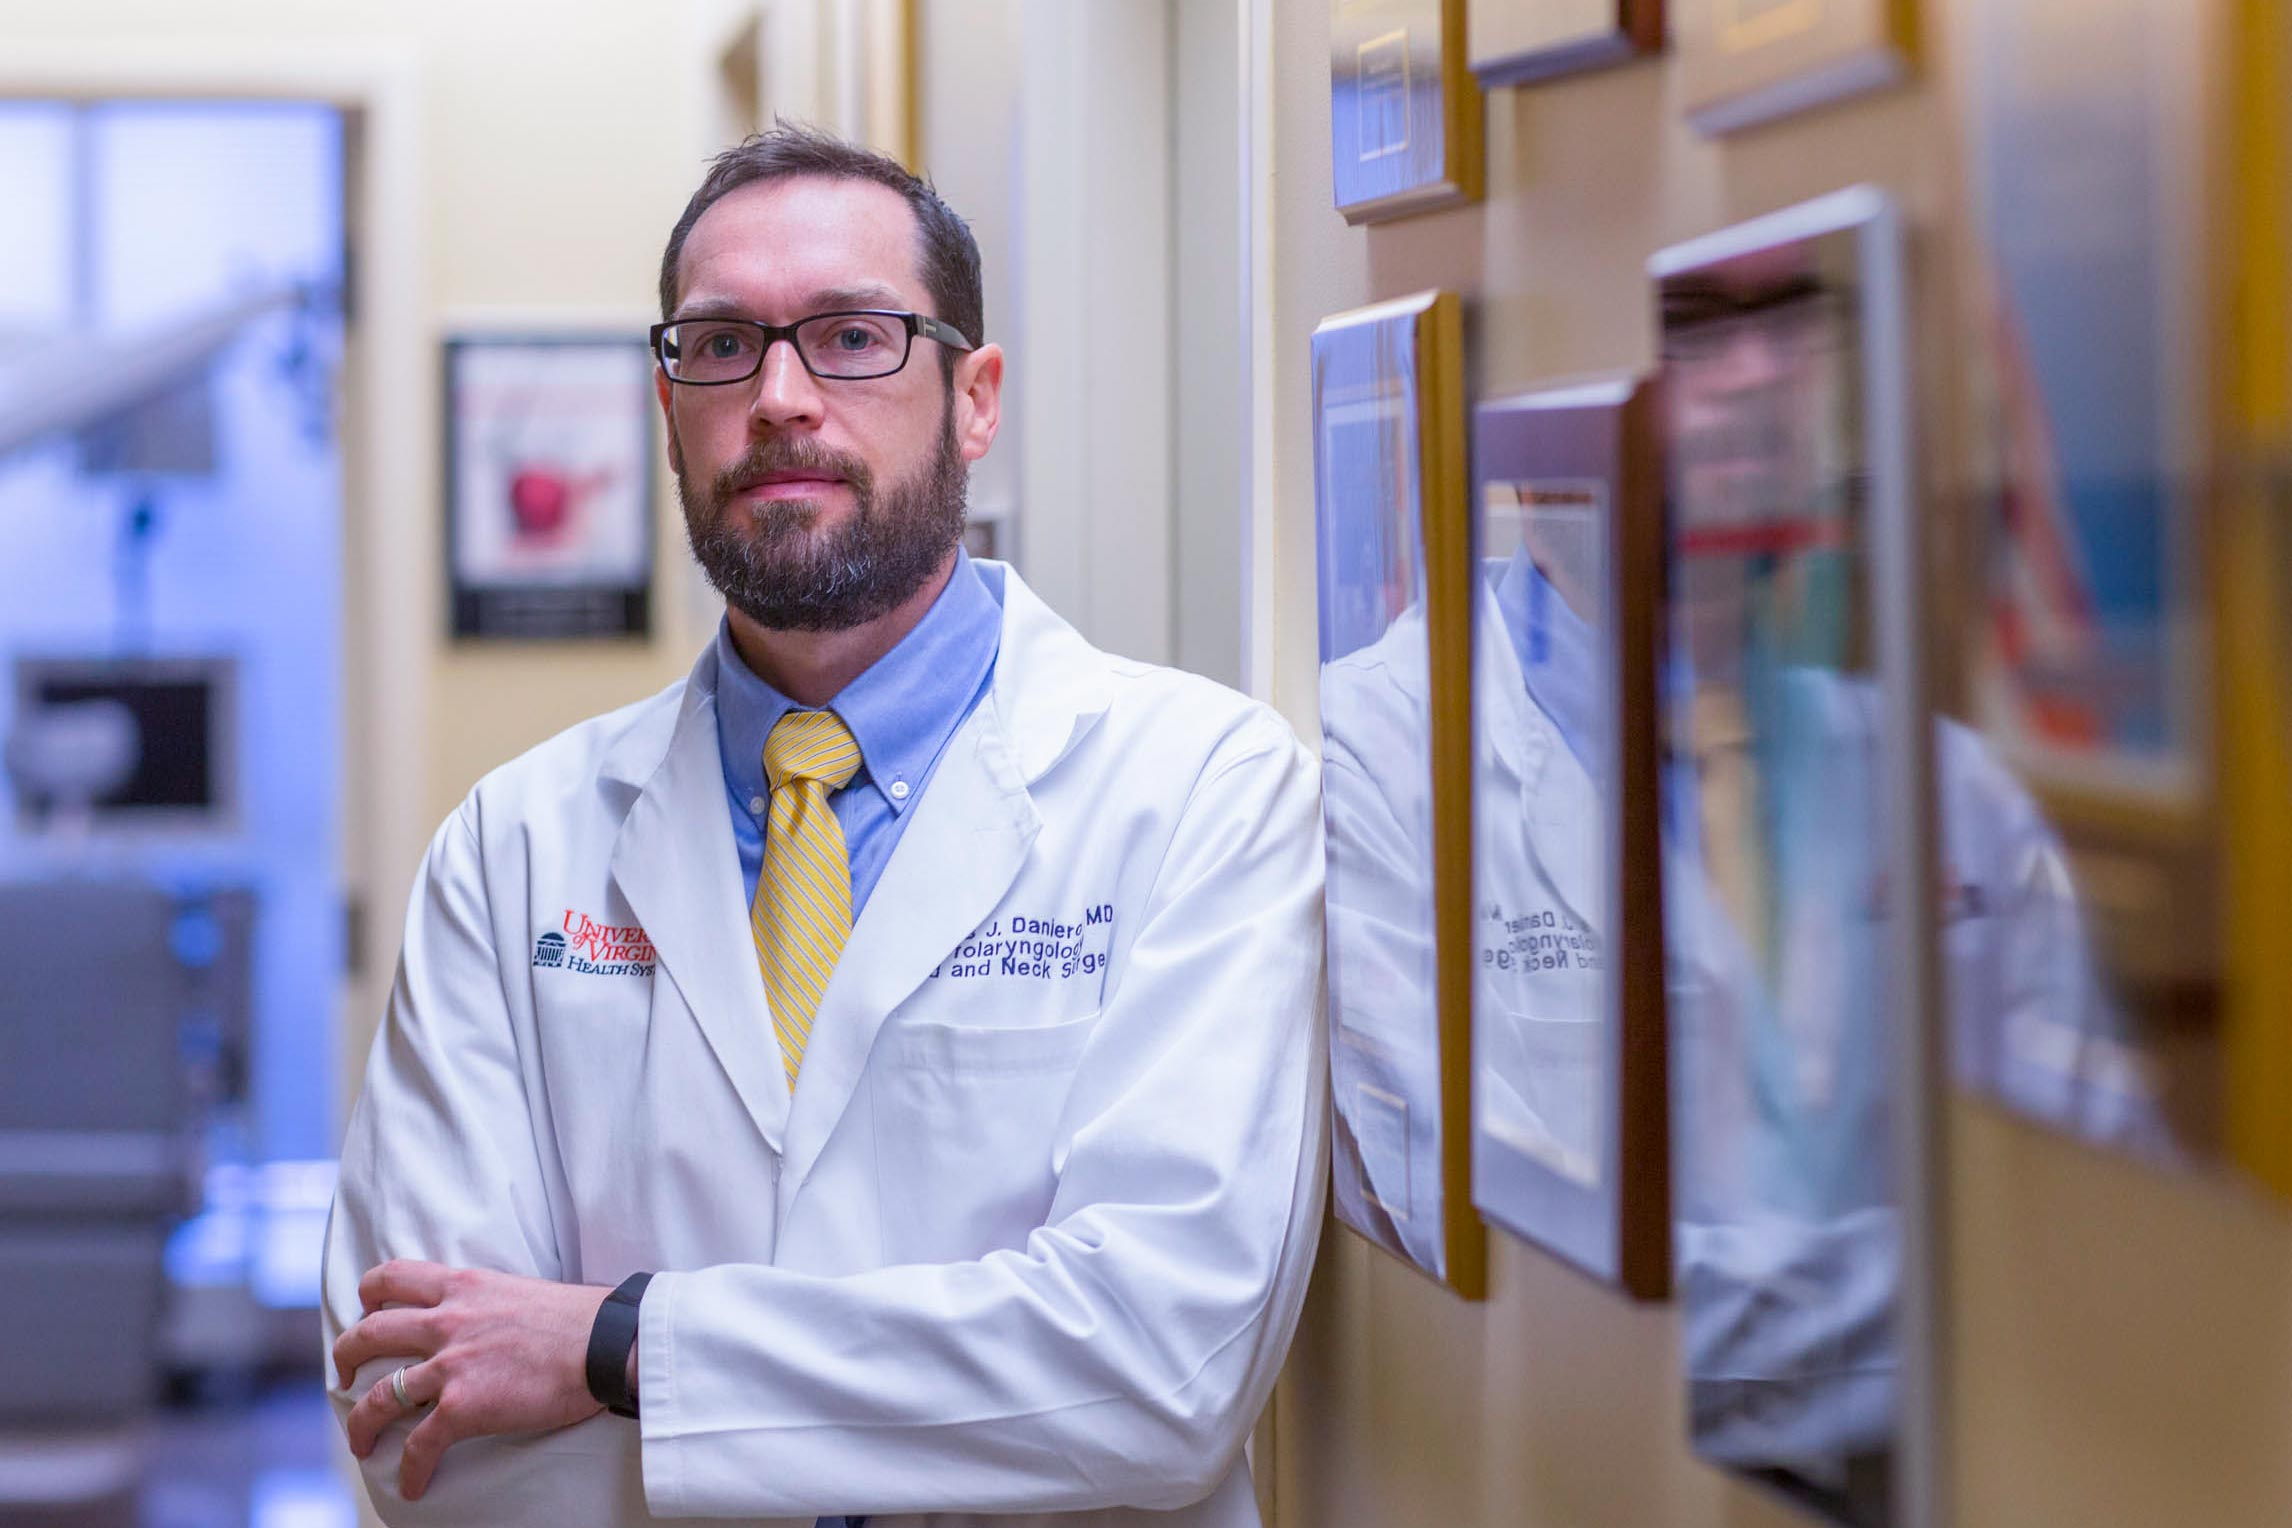 Dr. James Daniero, an otolaryngologist at the UVA Health System, is trying to bring more awareness to people with voice disorders.